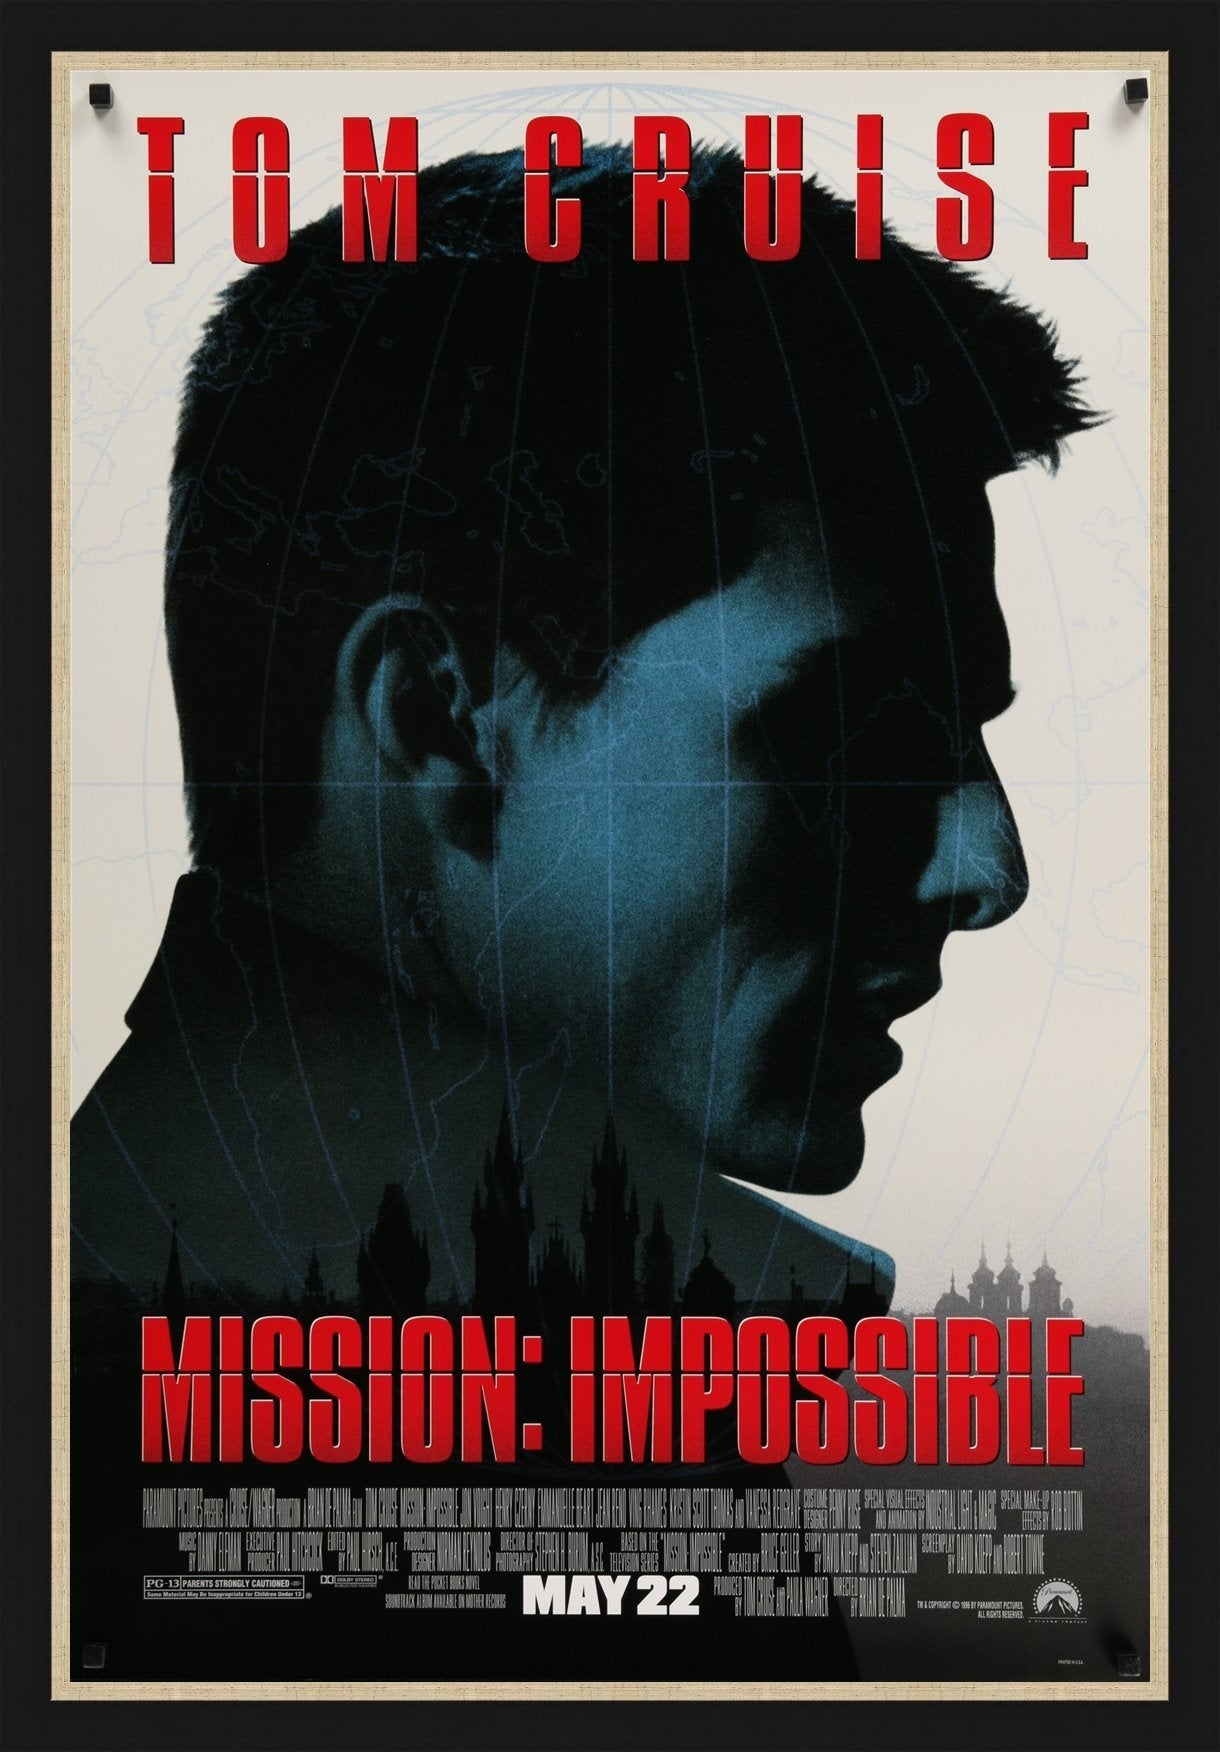 An original movie poster for the film Mission Impossible